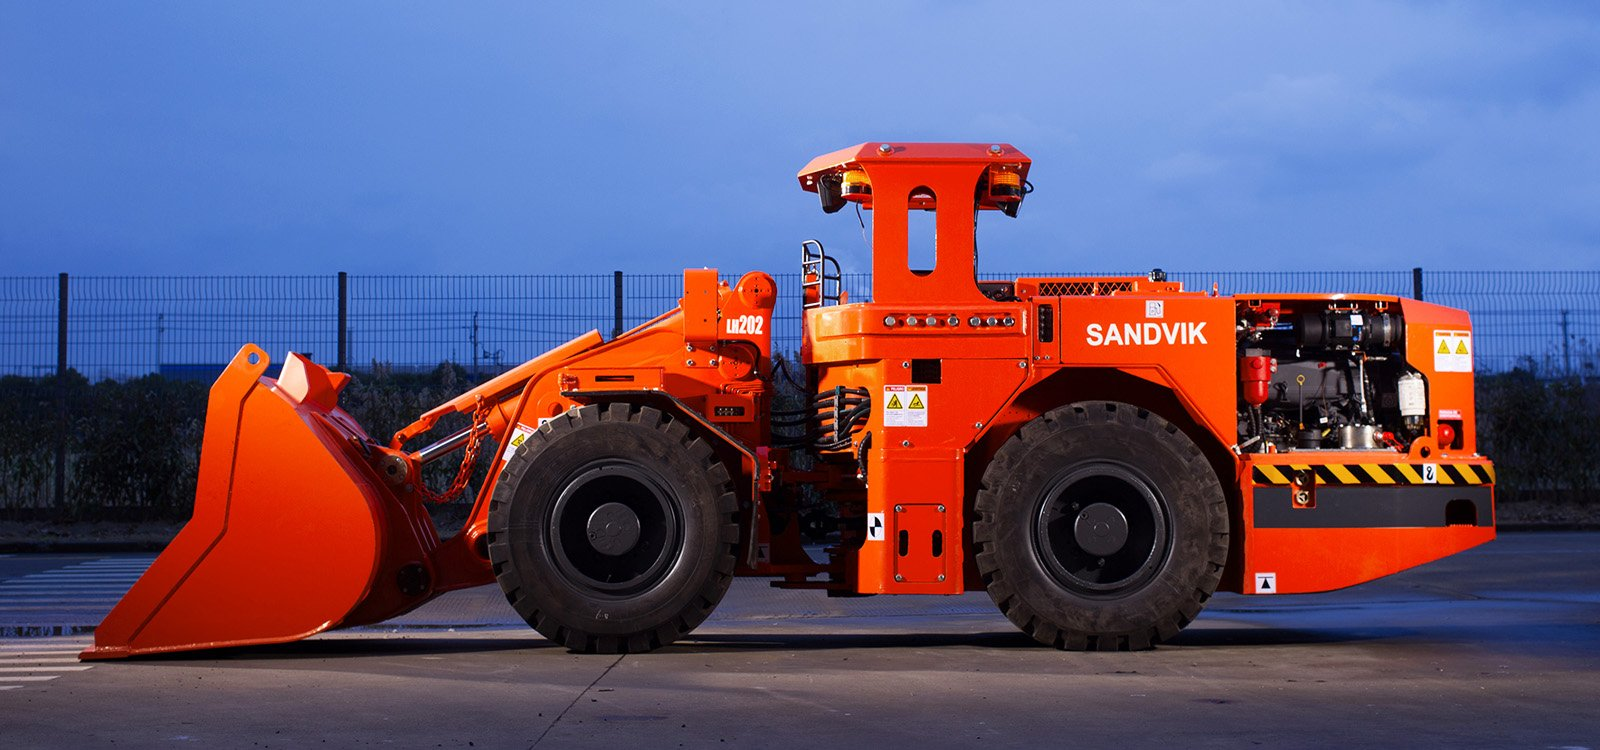 <p>The compact size of Sandvik LH202 can help reduce mine infrastructure costs.</p>